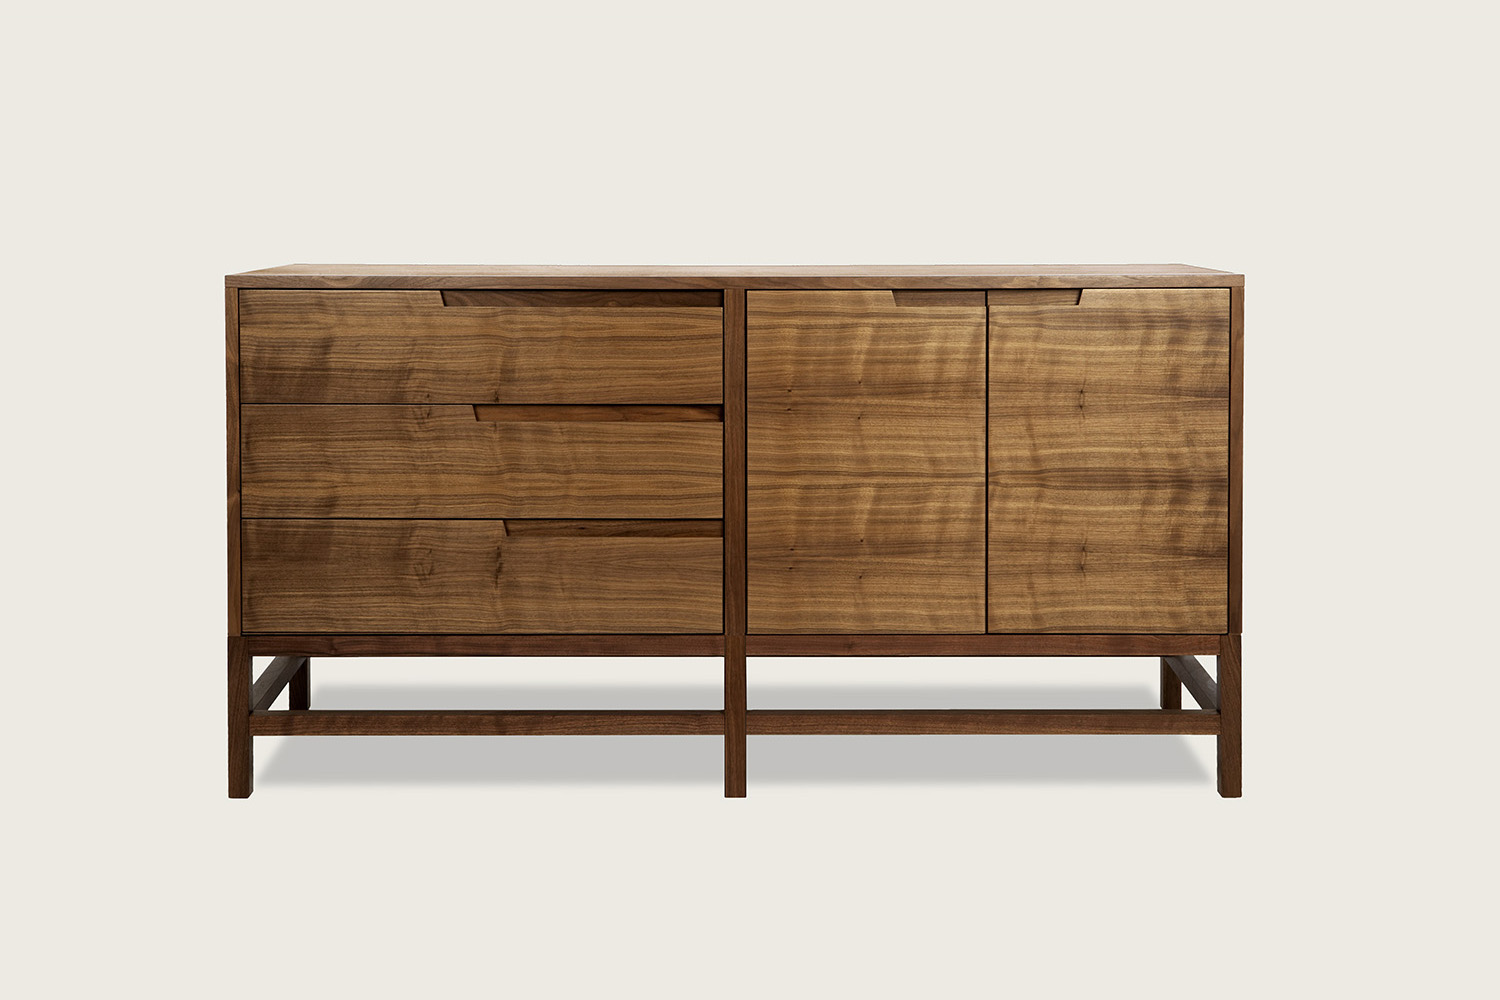 Linea 3-Drawer/2-Door Sideboard in walnut - Speke Klein